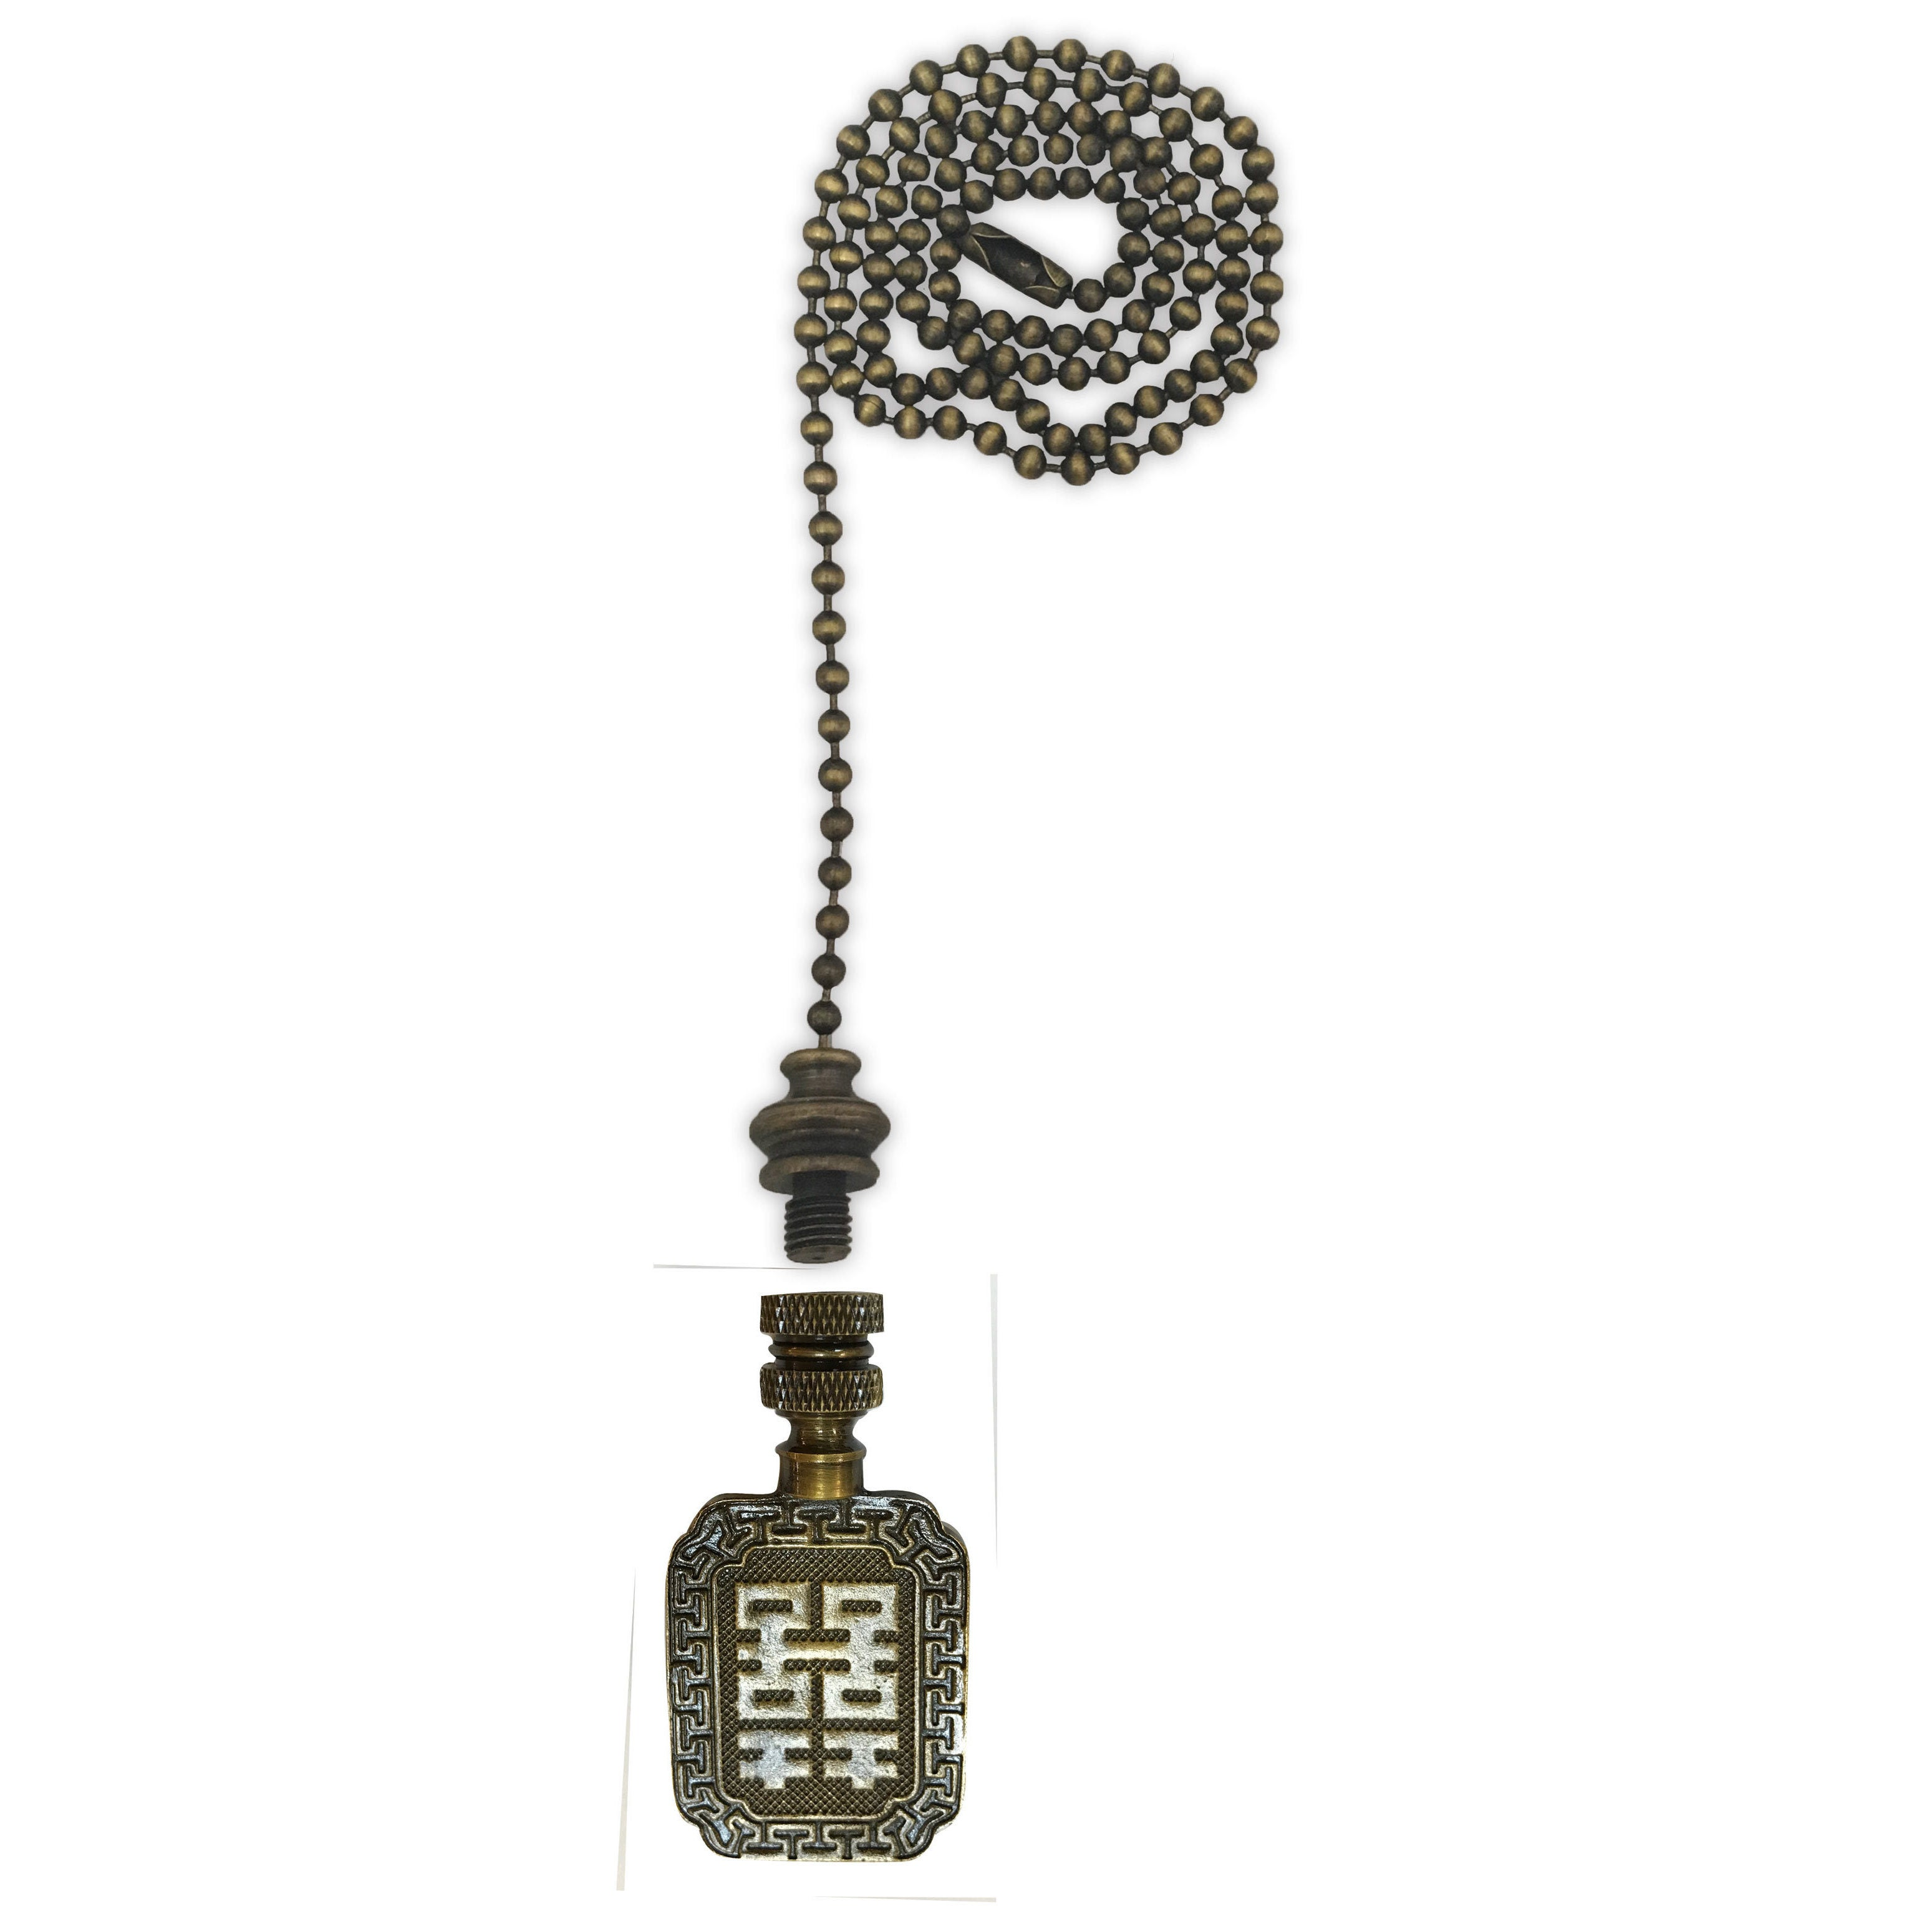 Royal designs fan pull chain with chinese joy symbol finial royal designs fan pull chain with chinese joy symbol finial antique brass free shipping on orders over 45 overstock 25547917 biocorpaavc Images